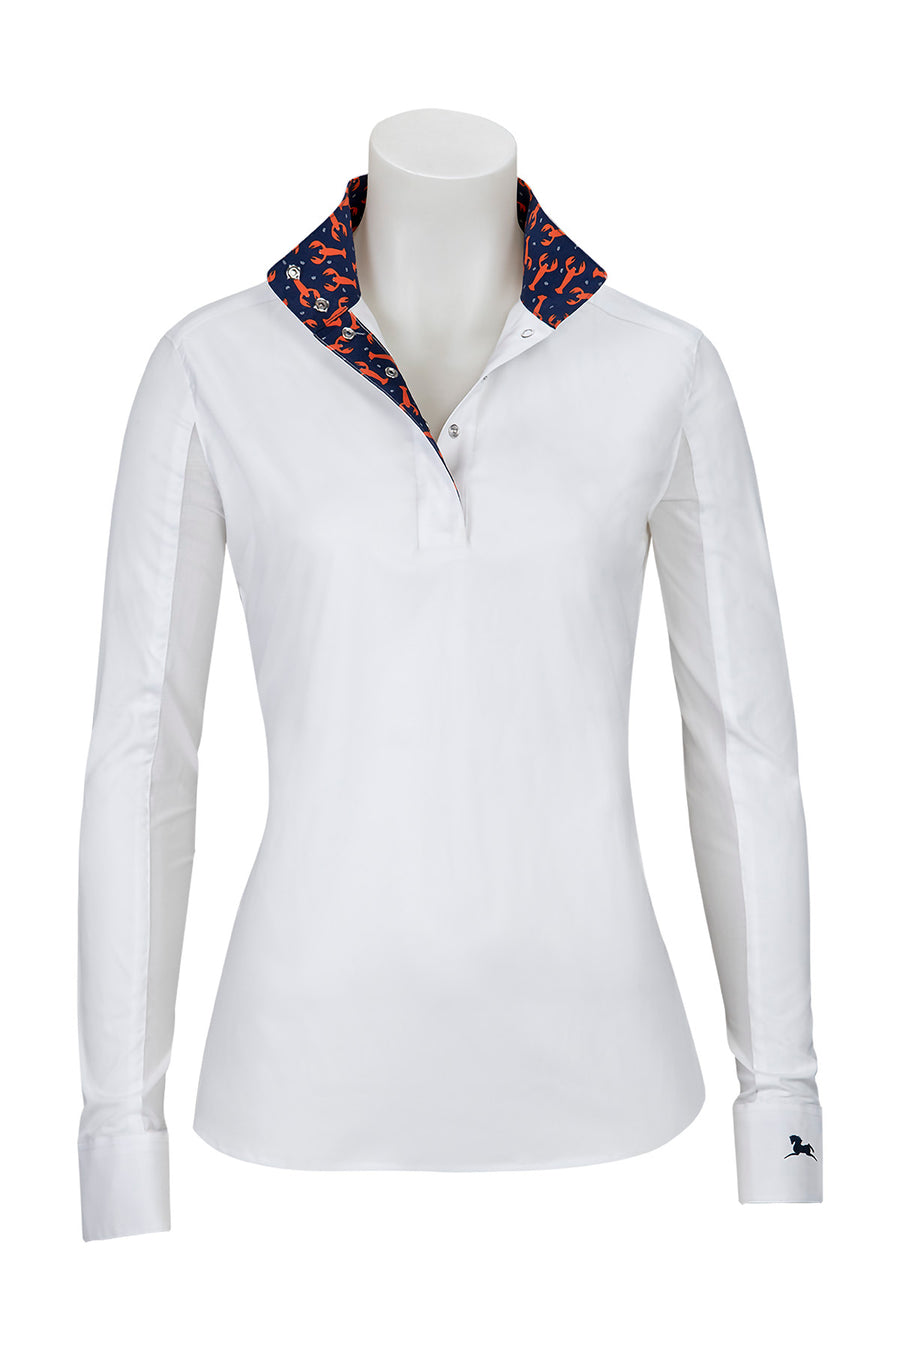 RJ Classics Ladies' Rebecca Show Shirt Lobsters-Show Shirts - Ladies Show Shirt-RJ Classics-Lobsters-S-Manhattan Saddlery